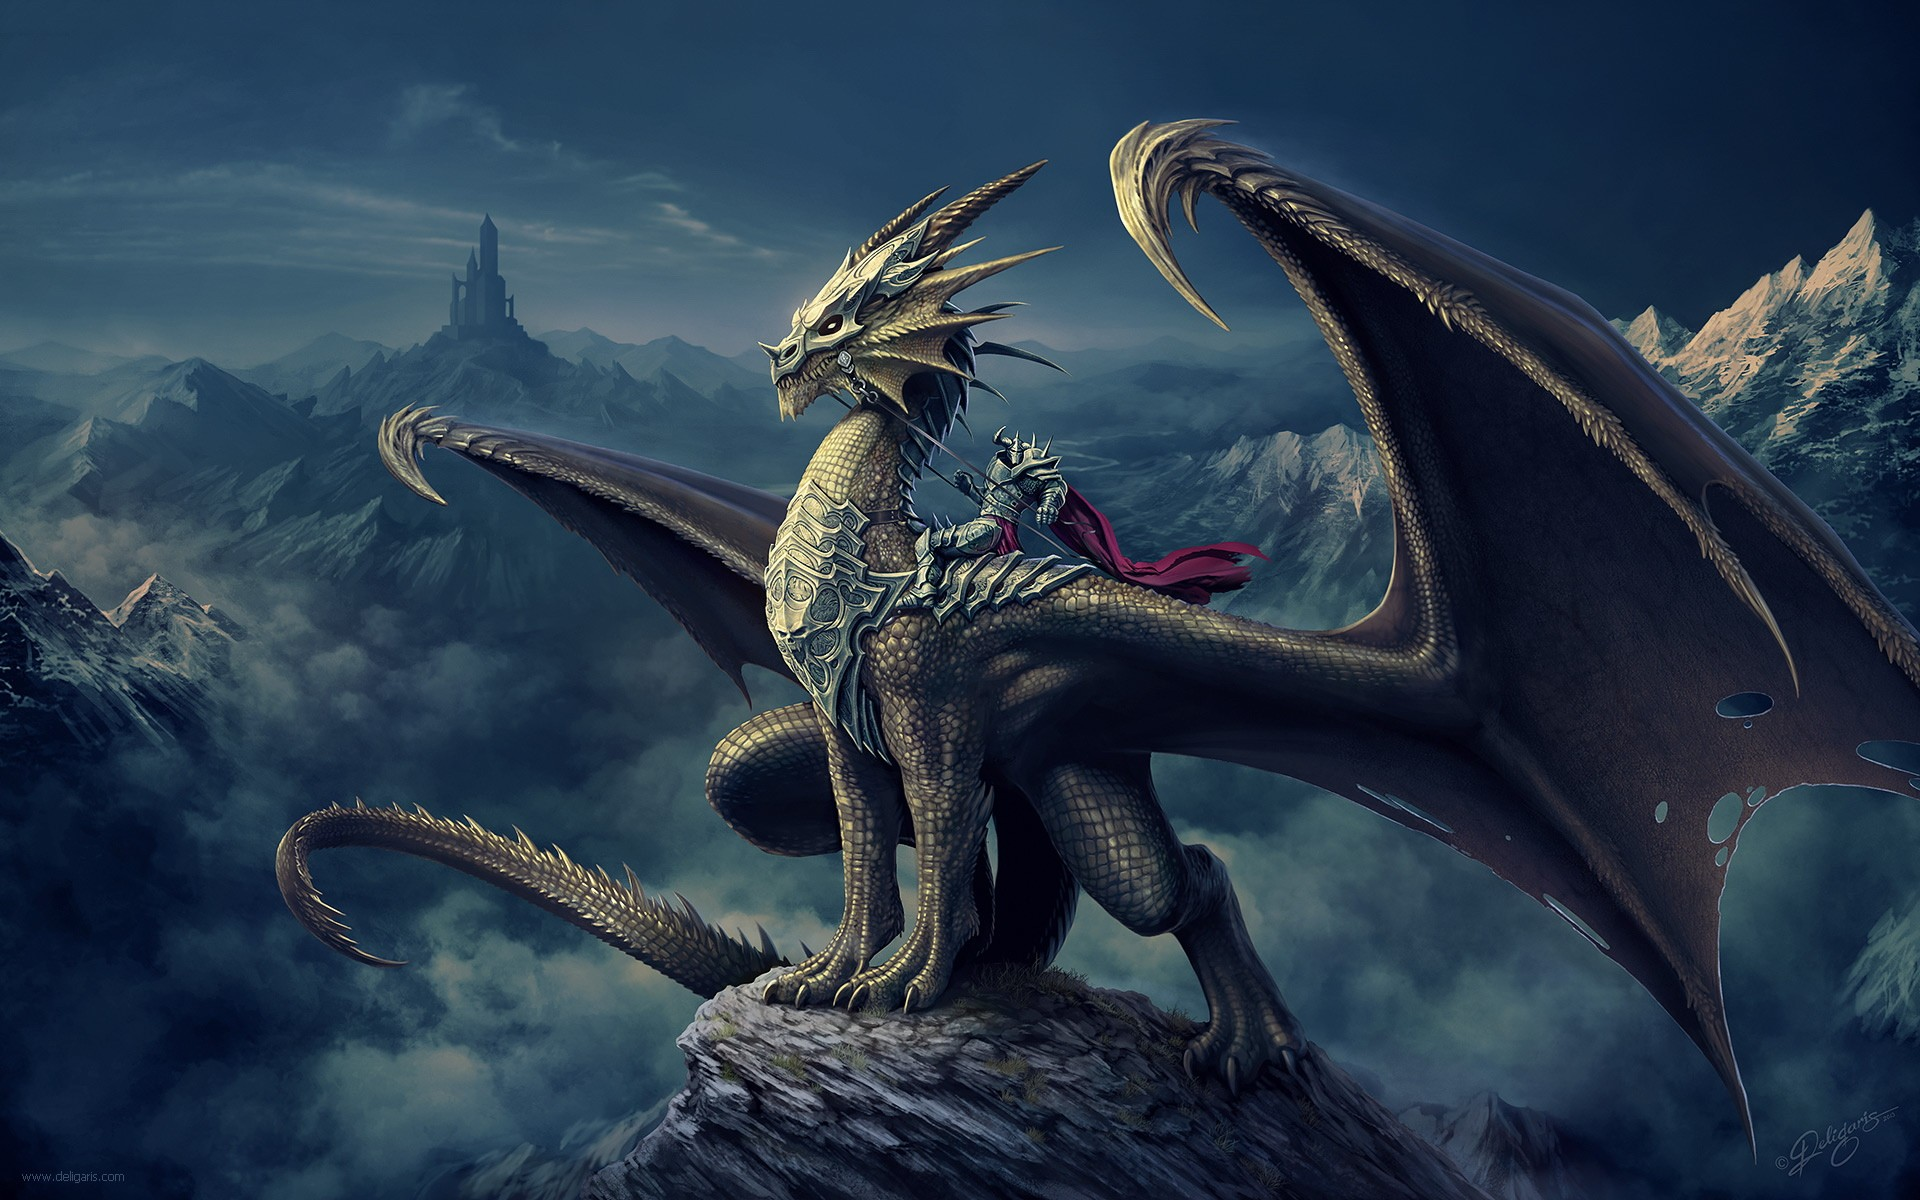 Warriror on a Dragon in a Dream World 713.66 Kb